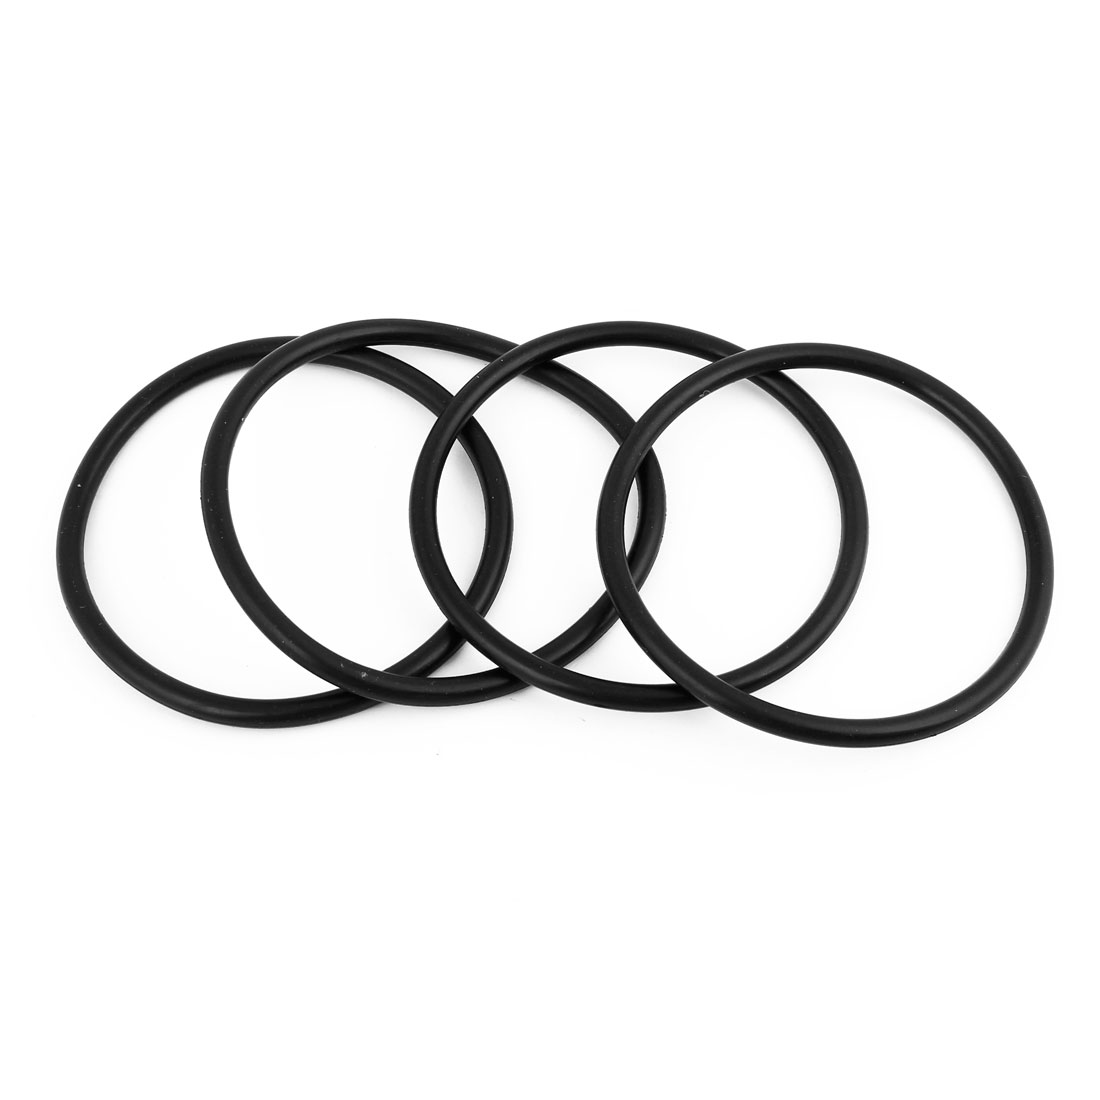 4 Pcs Black HNBR Car Van Air Con A/C Seal O Ring 85 x 5mm